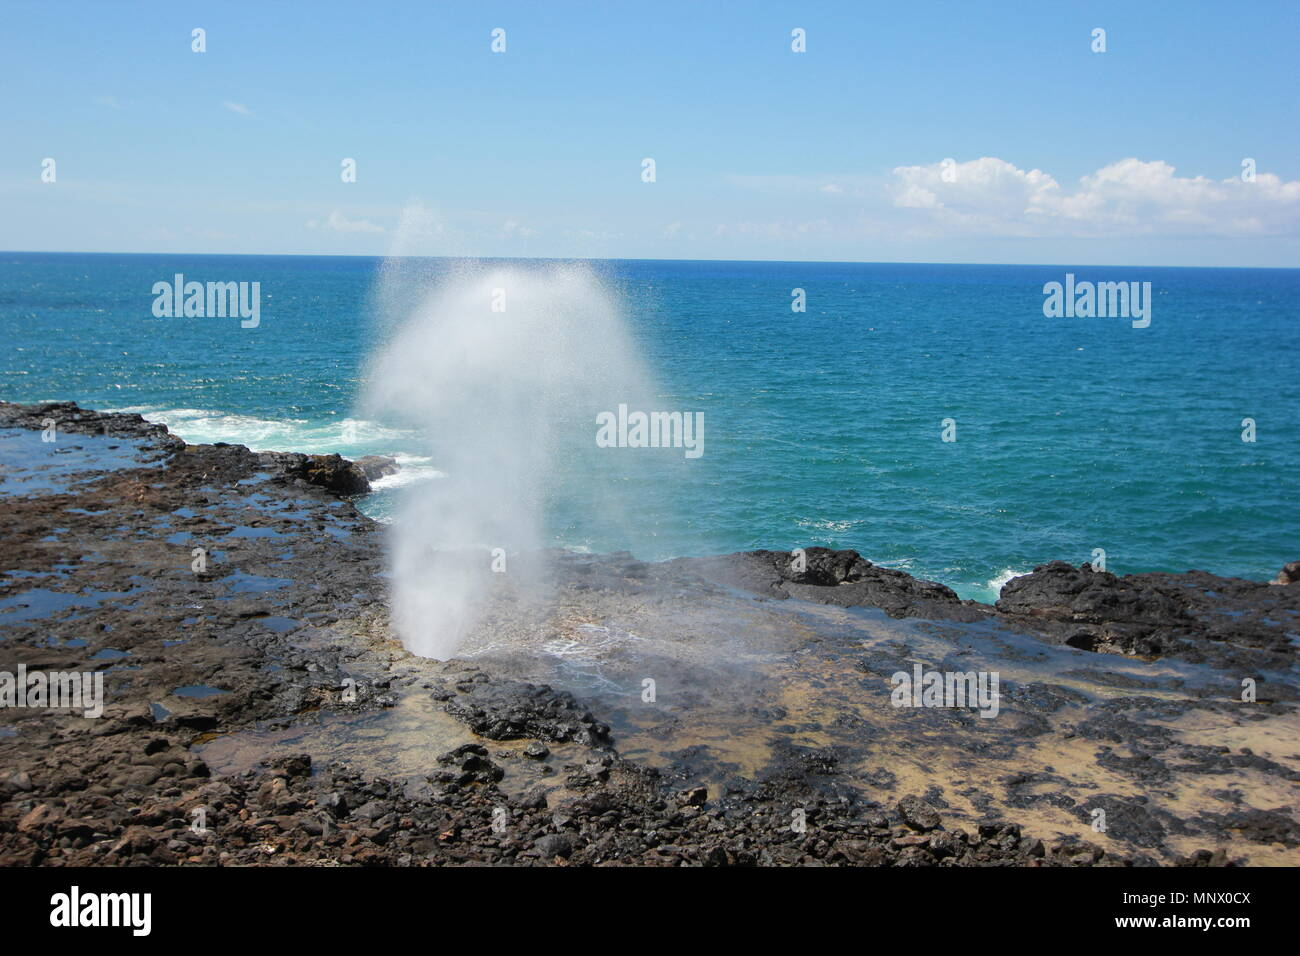 Spouting Horn is off the southern coast of Kauai in the Koloa district and is known for its crashing waves and large spray of water. - Stock Image